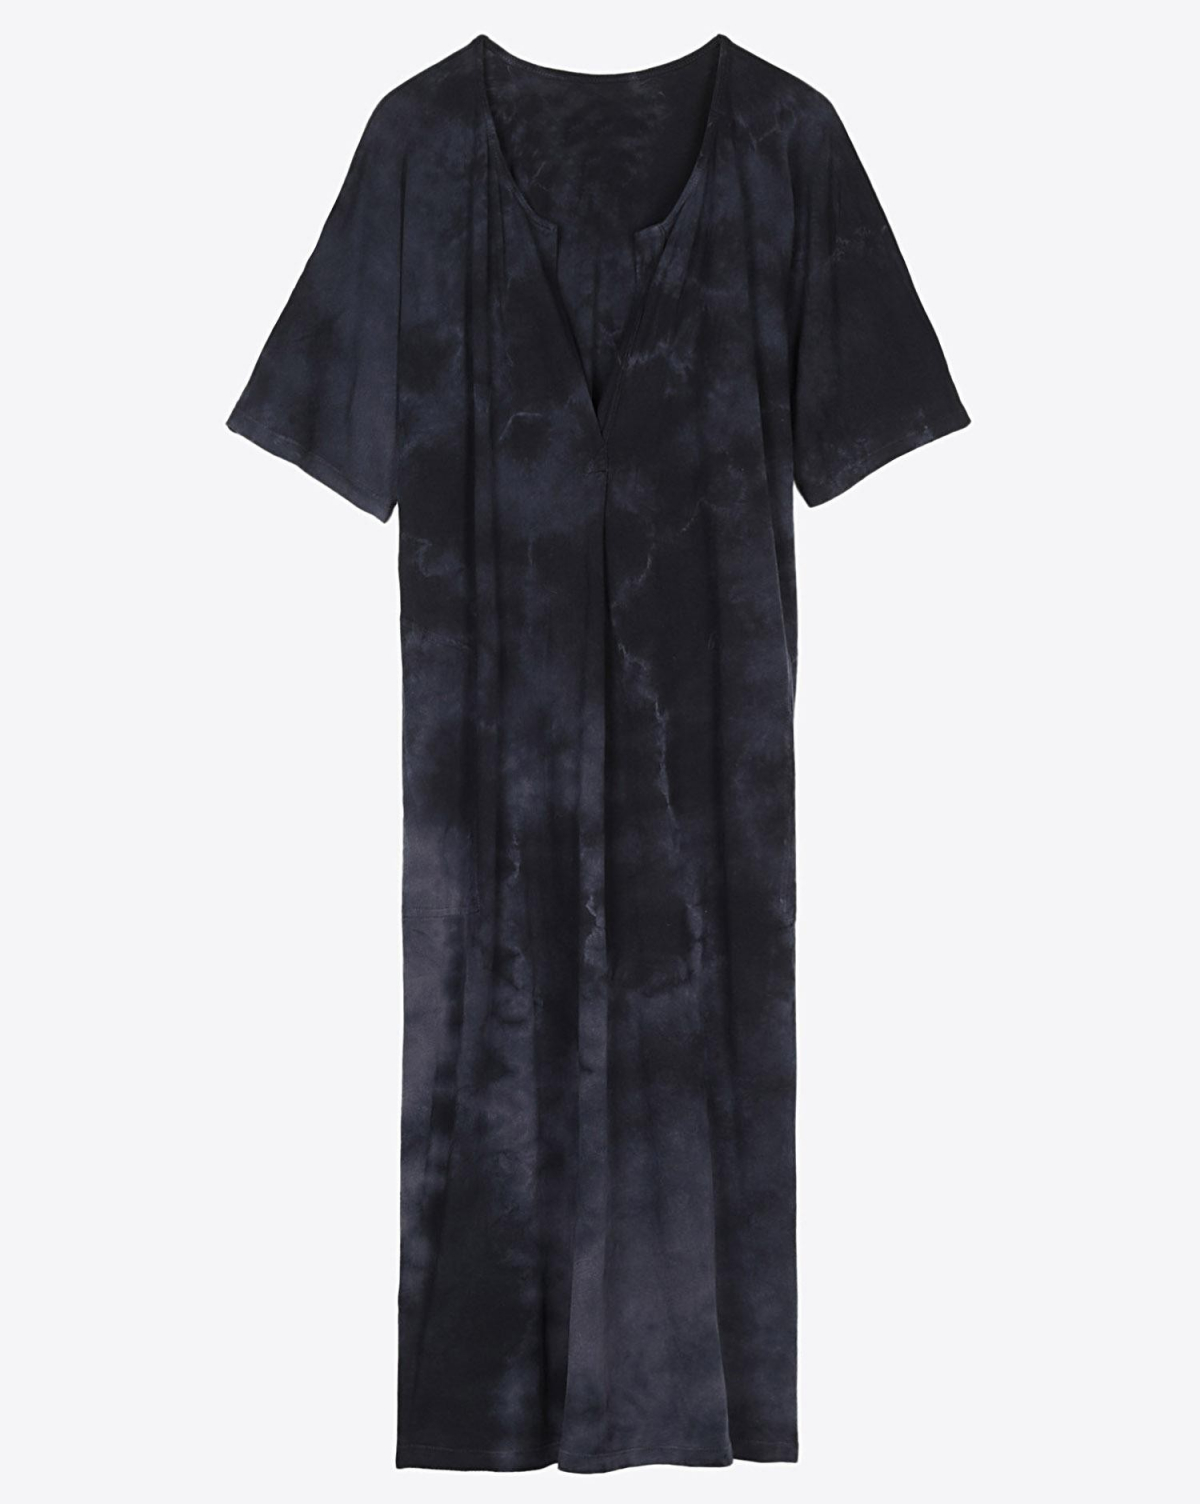 Raquel Allegra Pré-Collection Henley Dress - Black Tie Dye